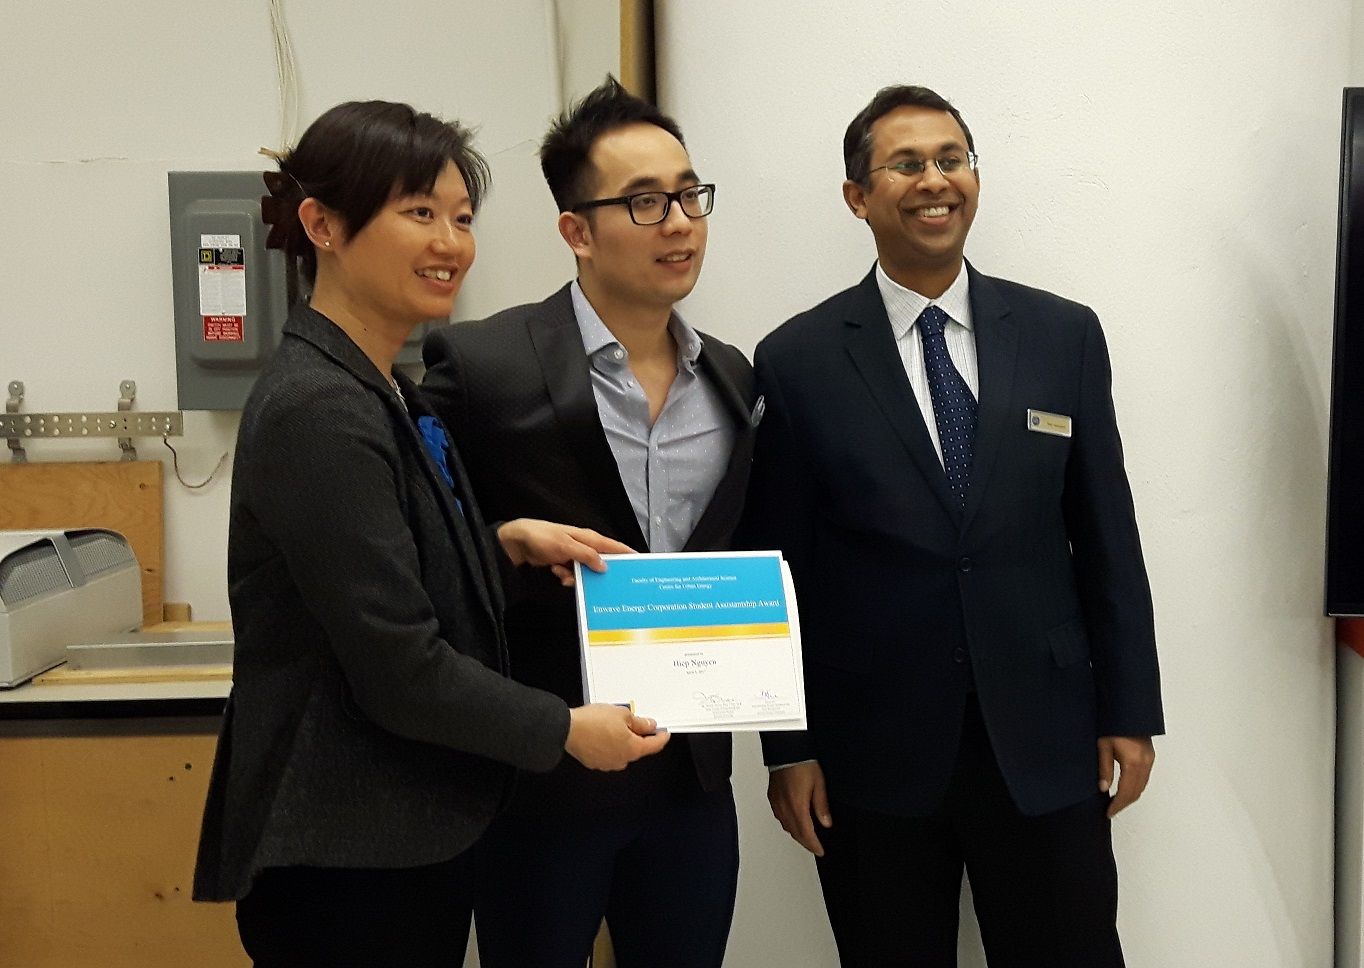 Hiep Nguyen receives an Enwave Student Assistantship Award at the Centre for Urban Energy at Ryerson